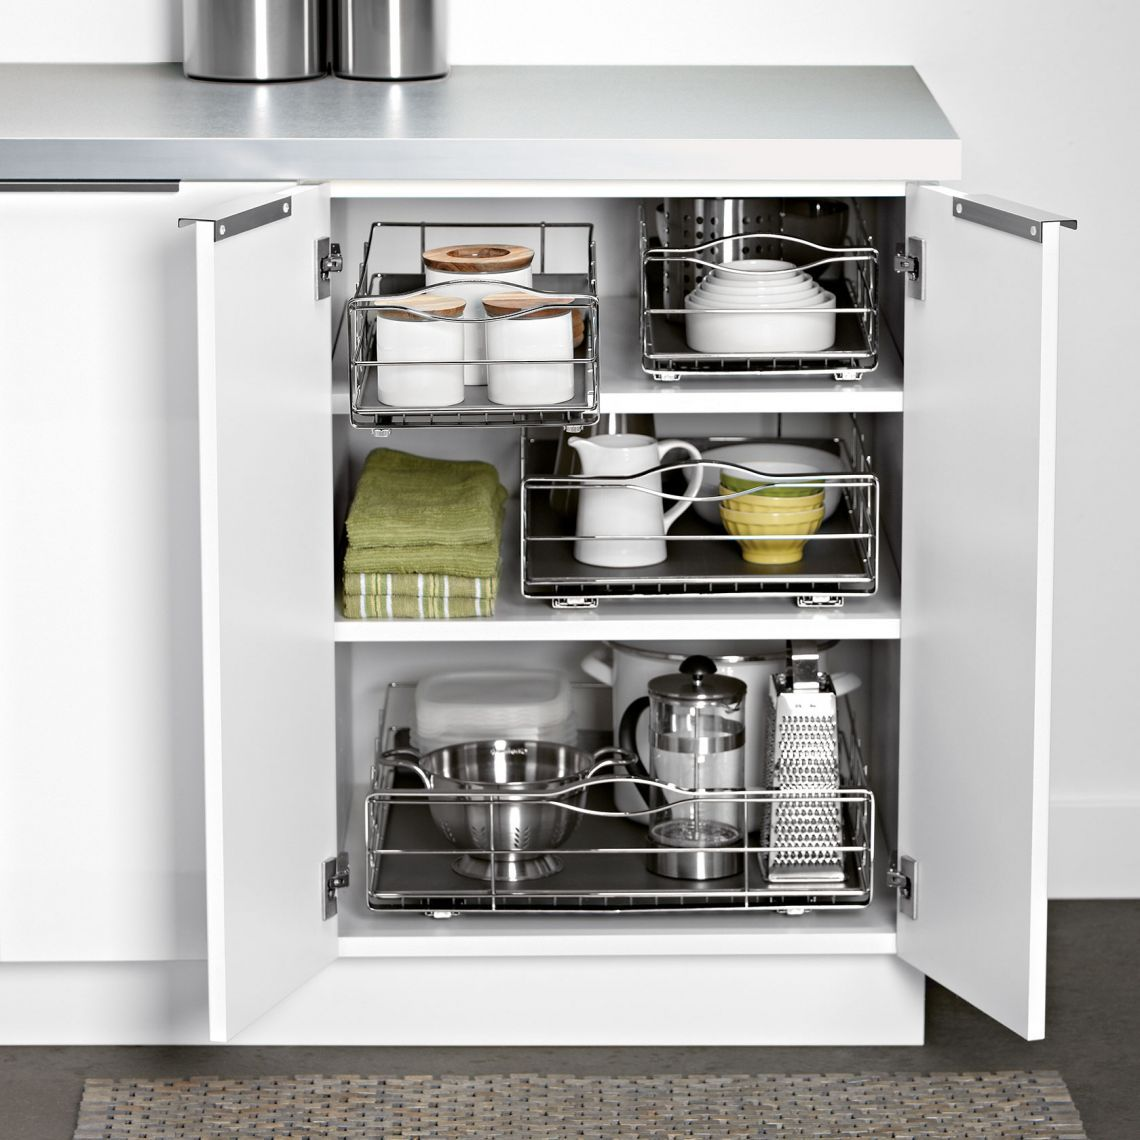 Ikea Tall Pantry Cabinet With Pull Out Shelves So You Can Reach